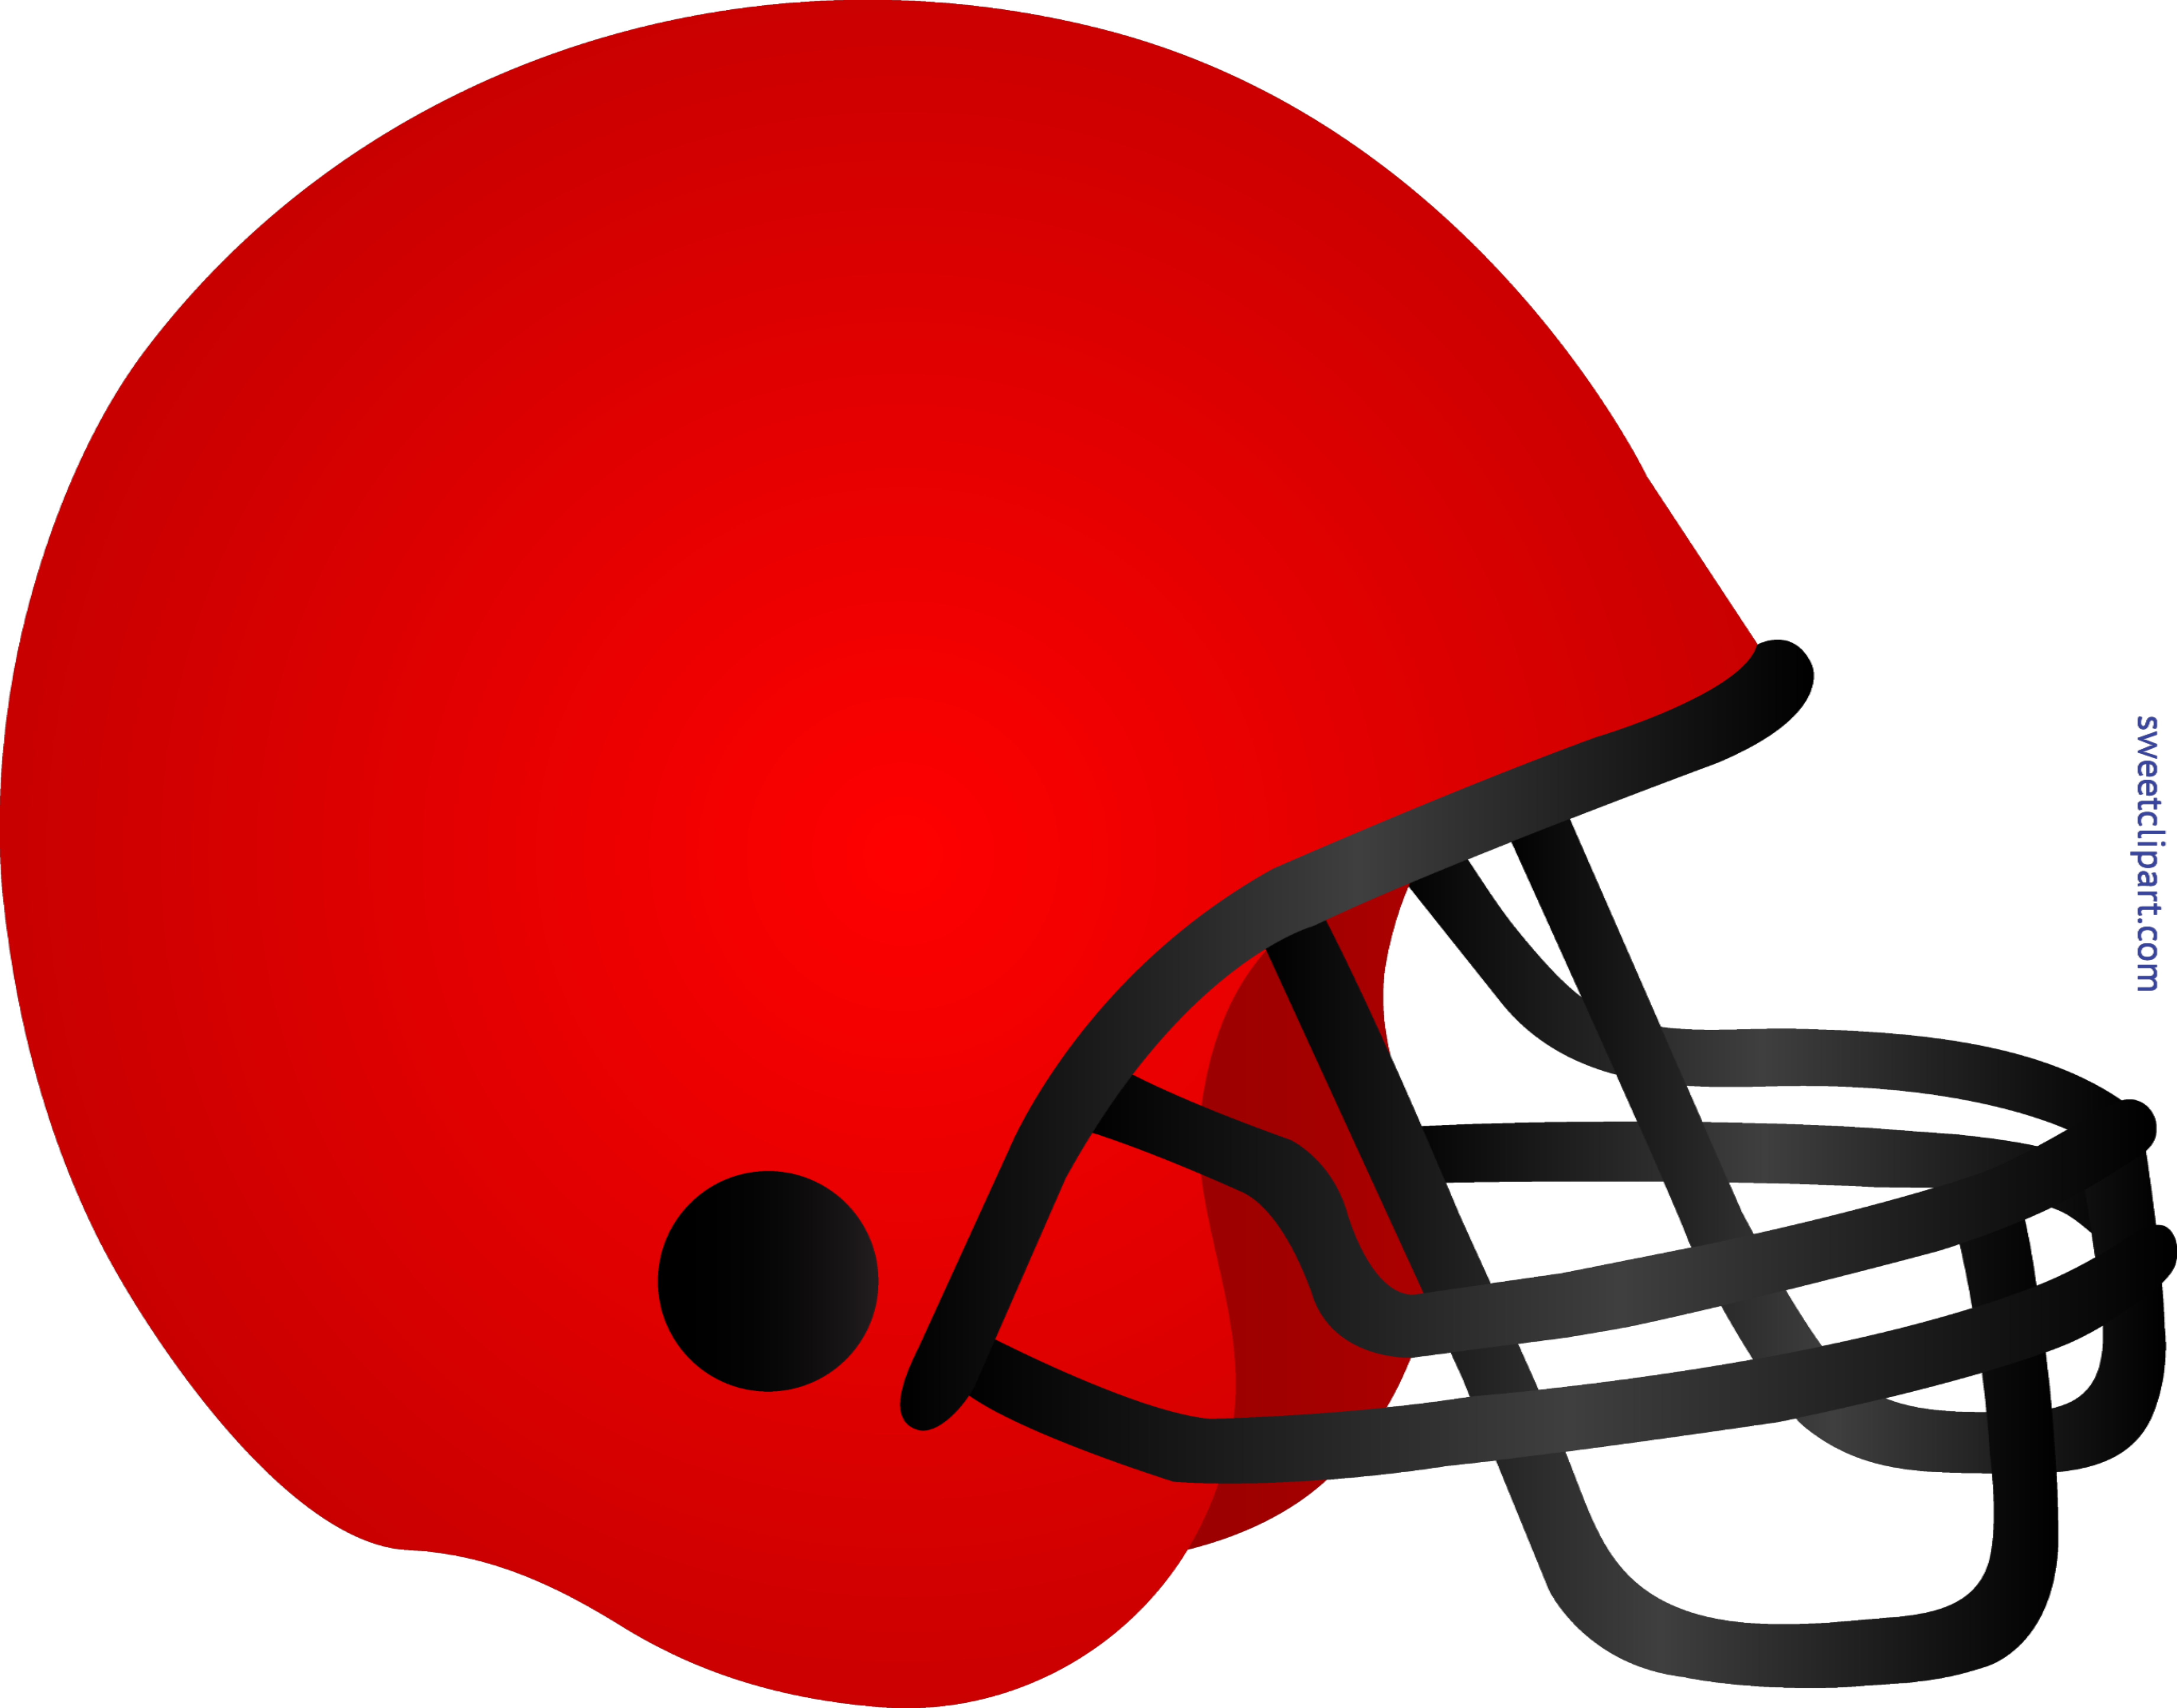 Football Helmet Red Clip Art.